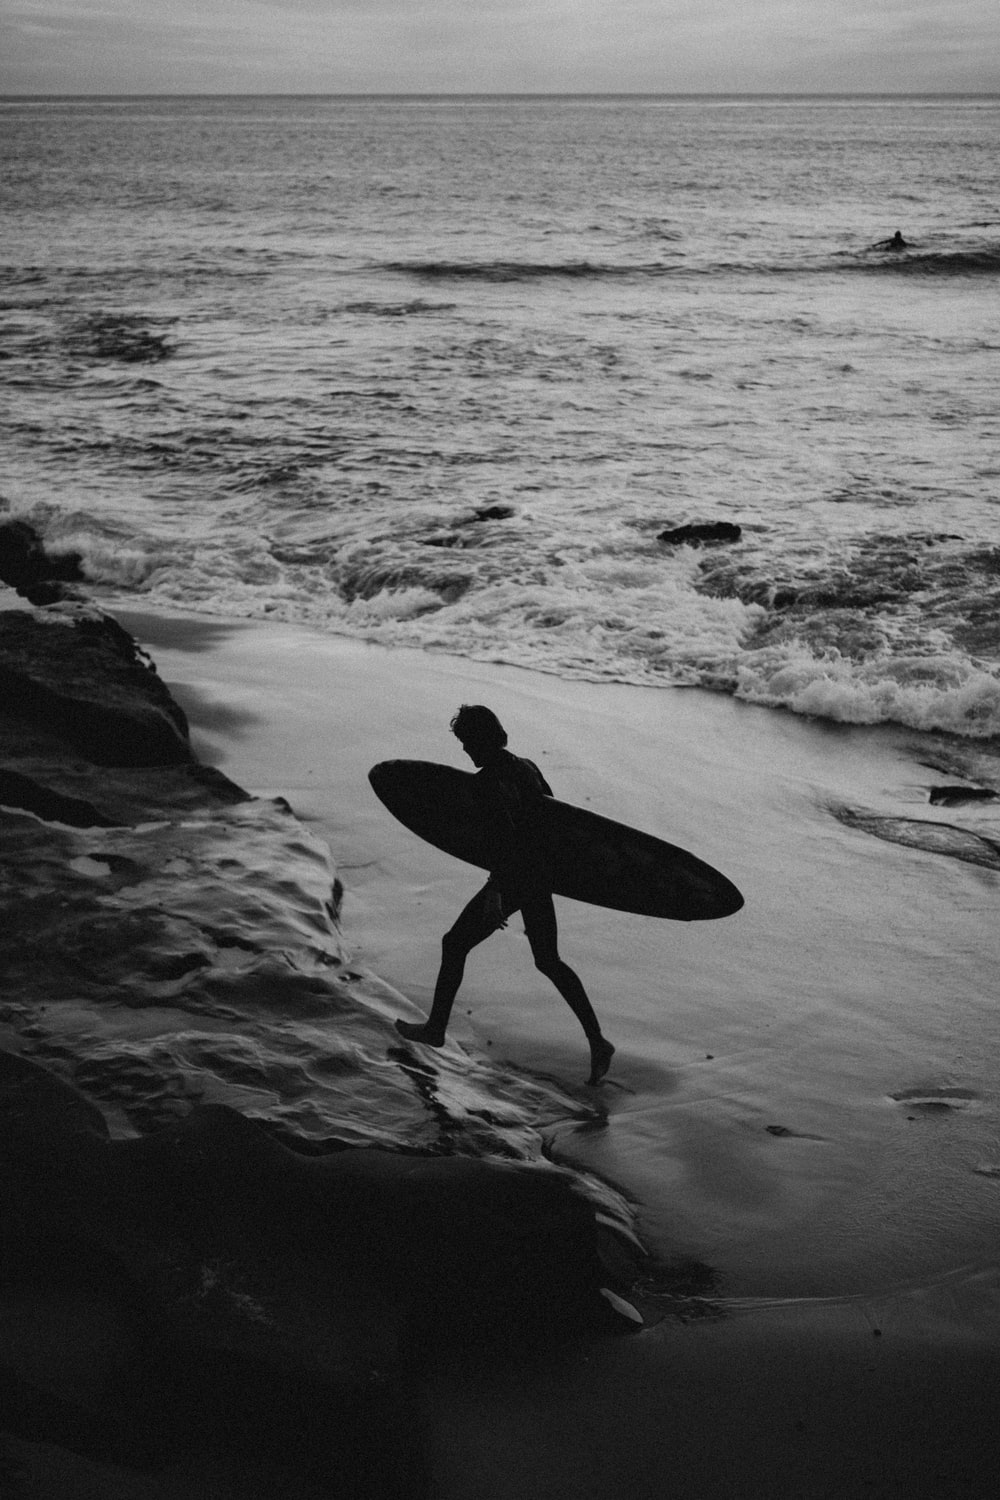 silhouette of man carrying surfboard